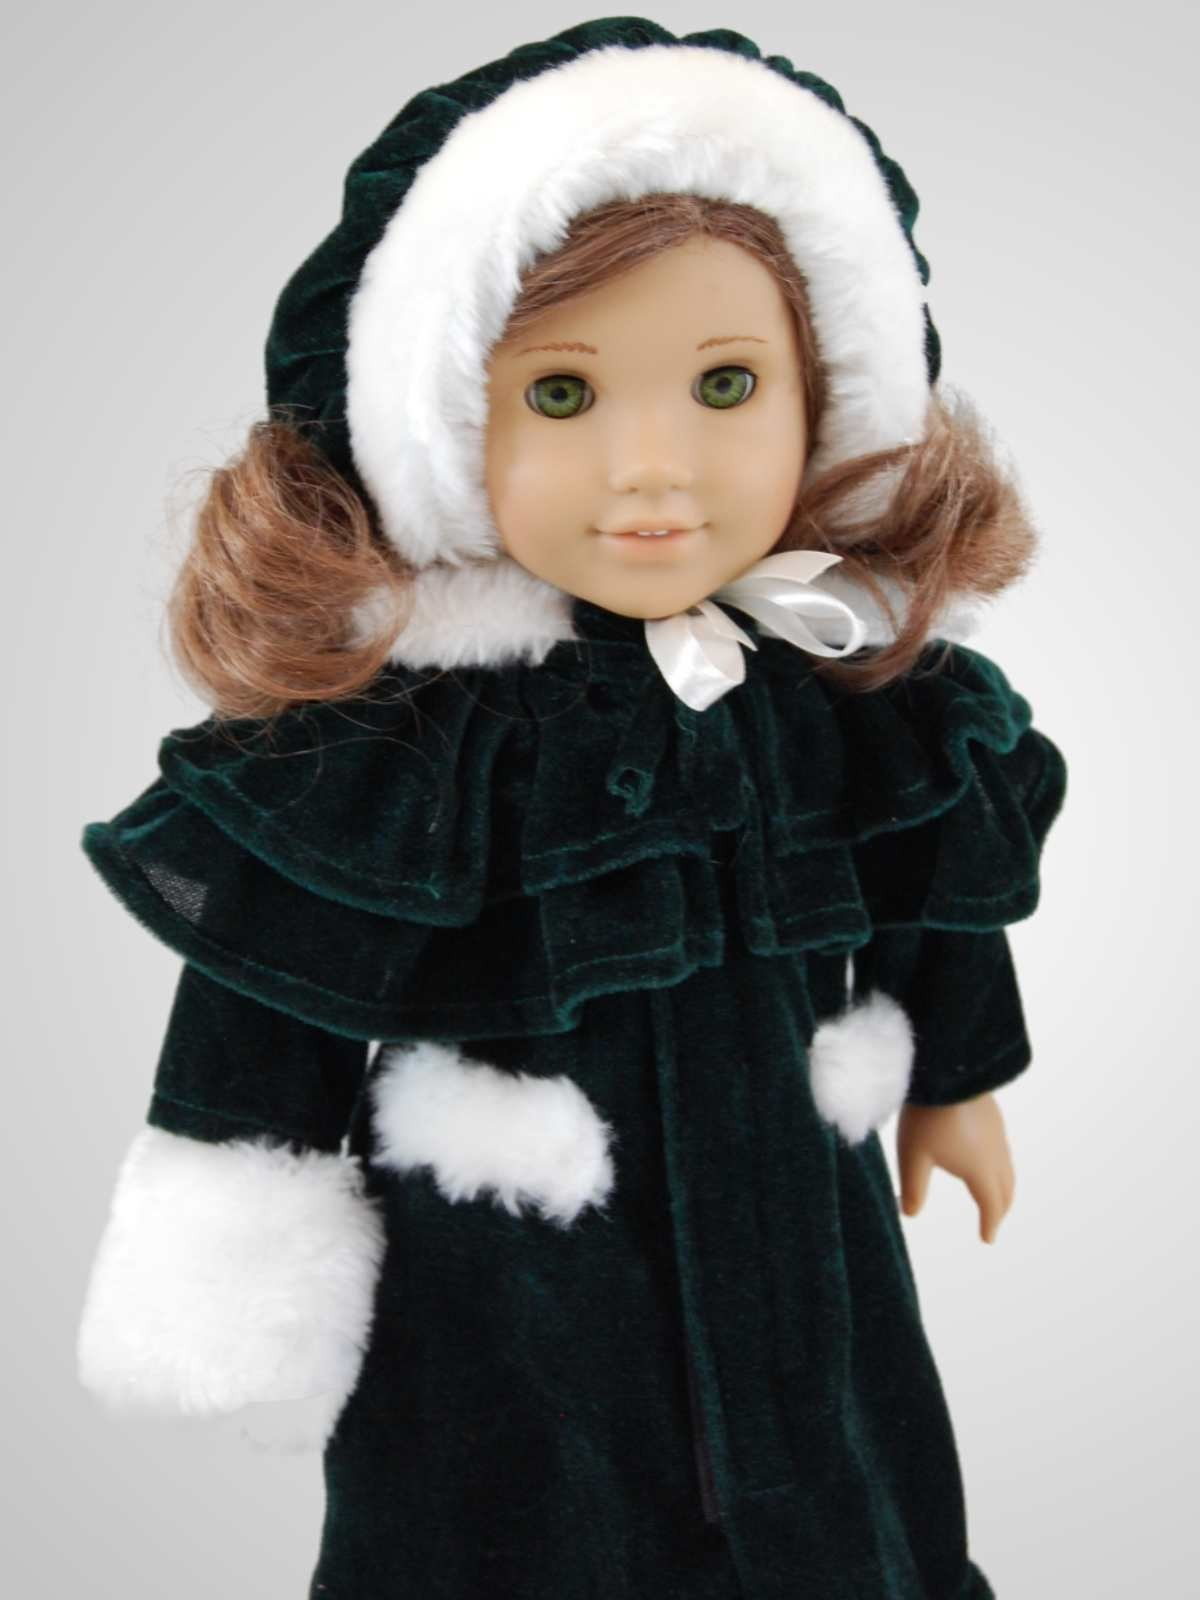 Velvet Coat Doll Clothes Outfit For 18 Quot American Girl 168 Doll